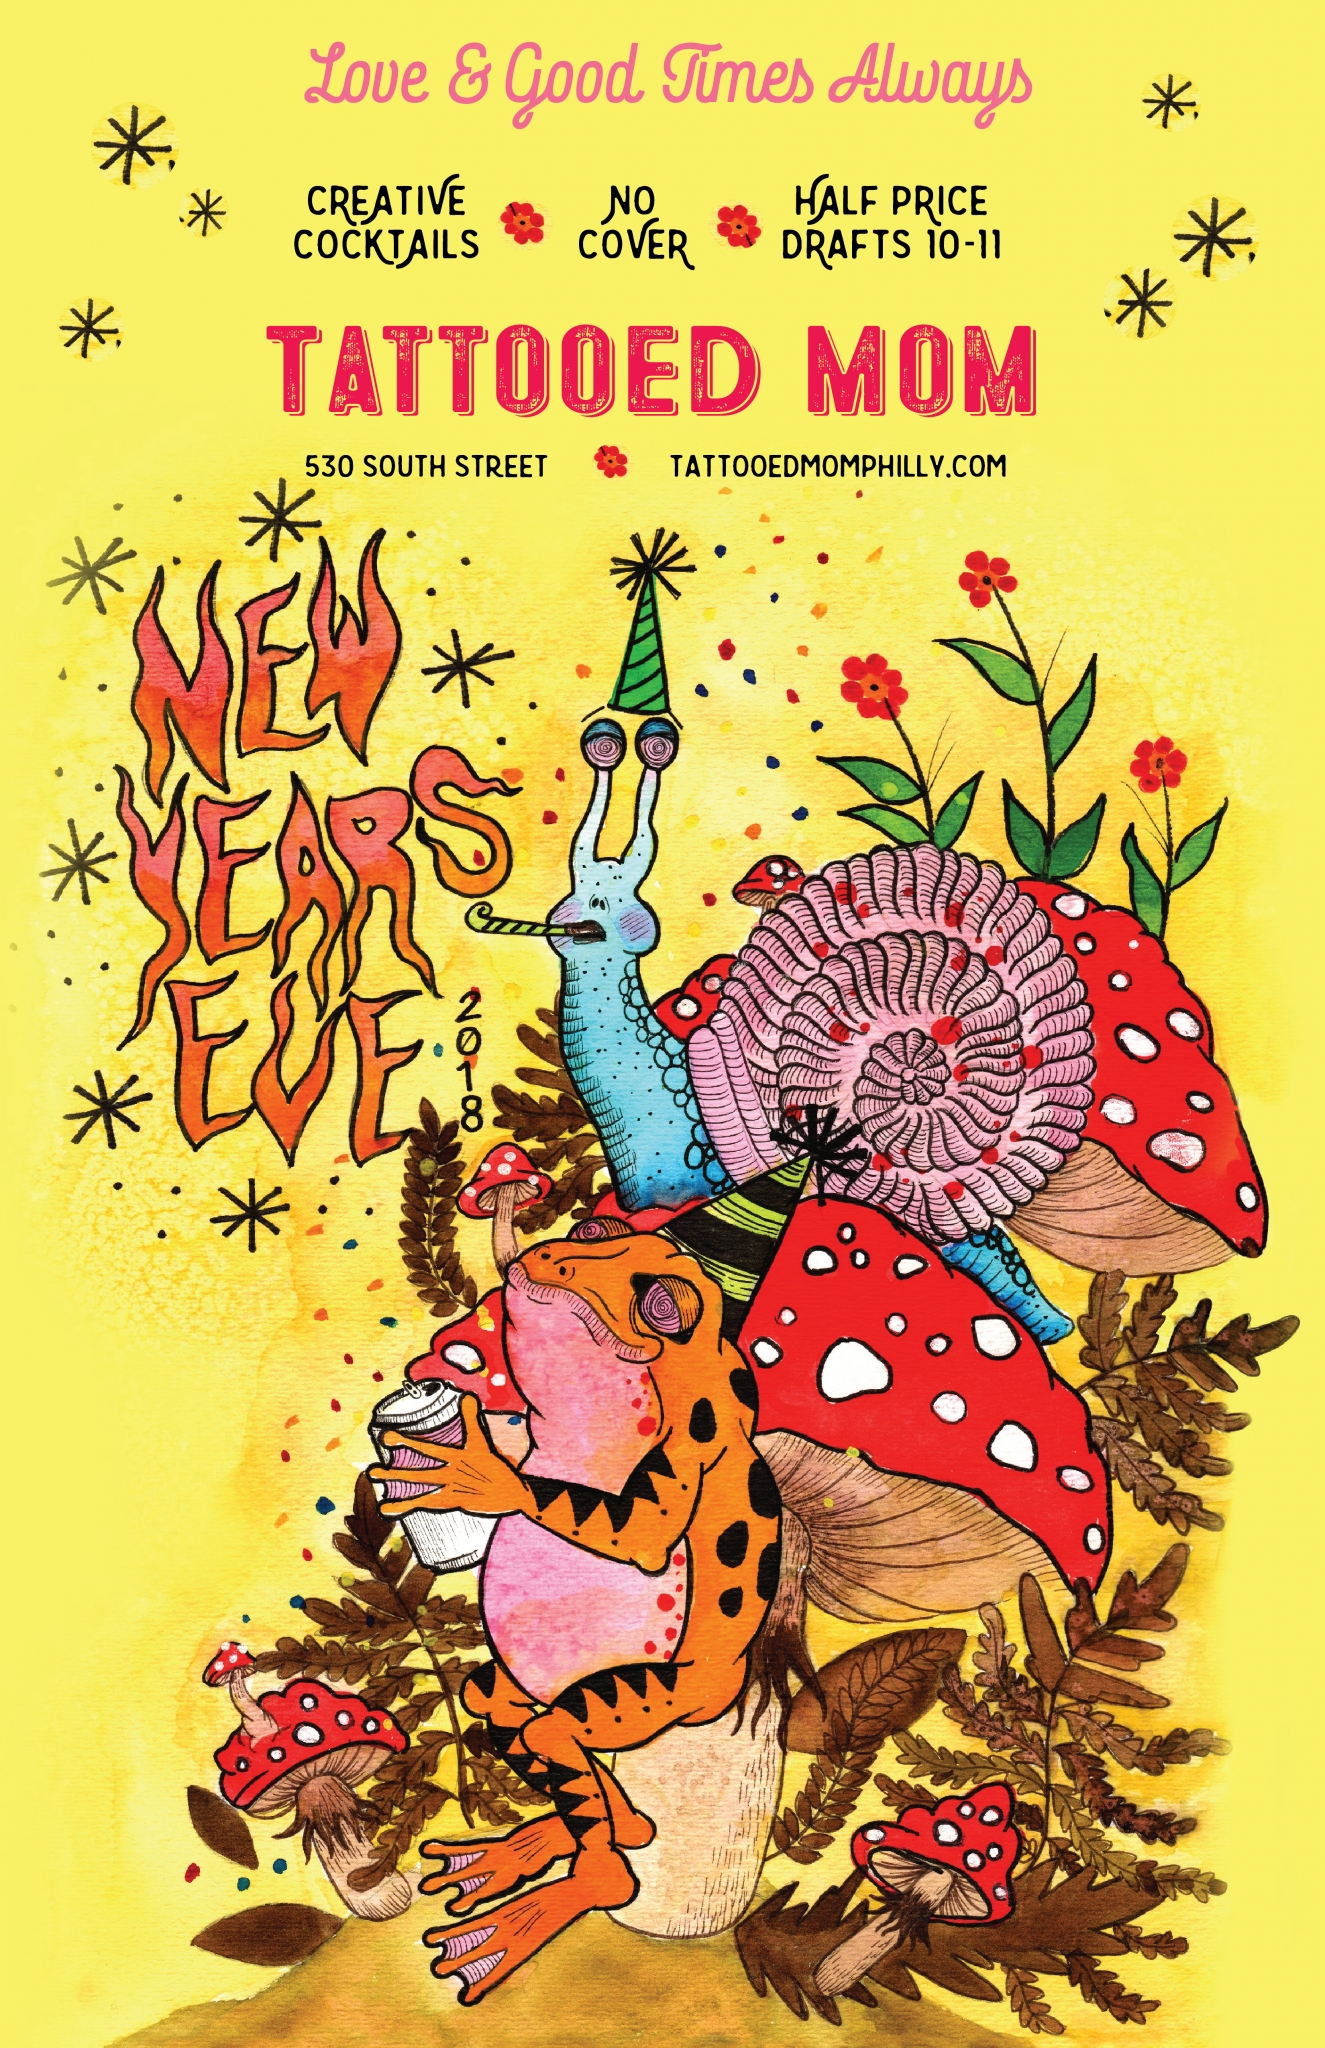 Tattooed Mom New Years Eve Poster